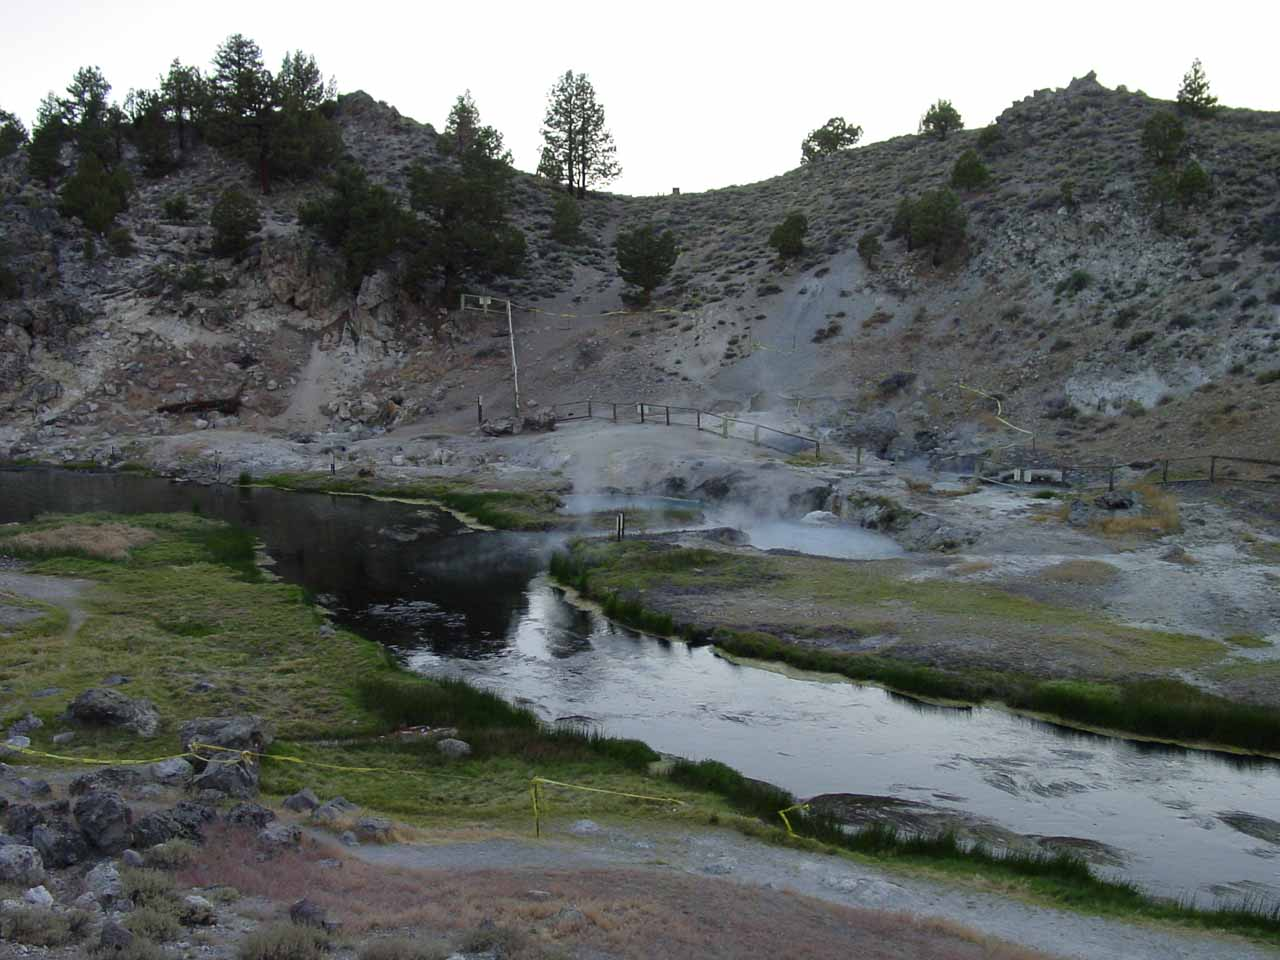 Twin Falls is very close to the Mammoth Lakes Resort Community, but back on the Hwy 395, in just a few minutes drive from the Mammoth turnoff is Hot Creek, which was once a good place for a warm soak